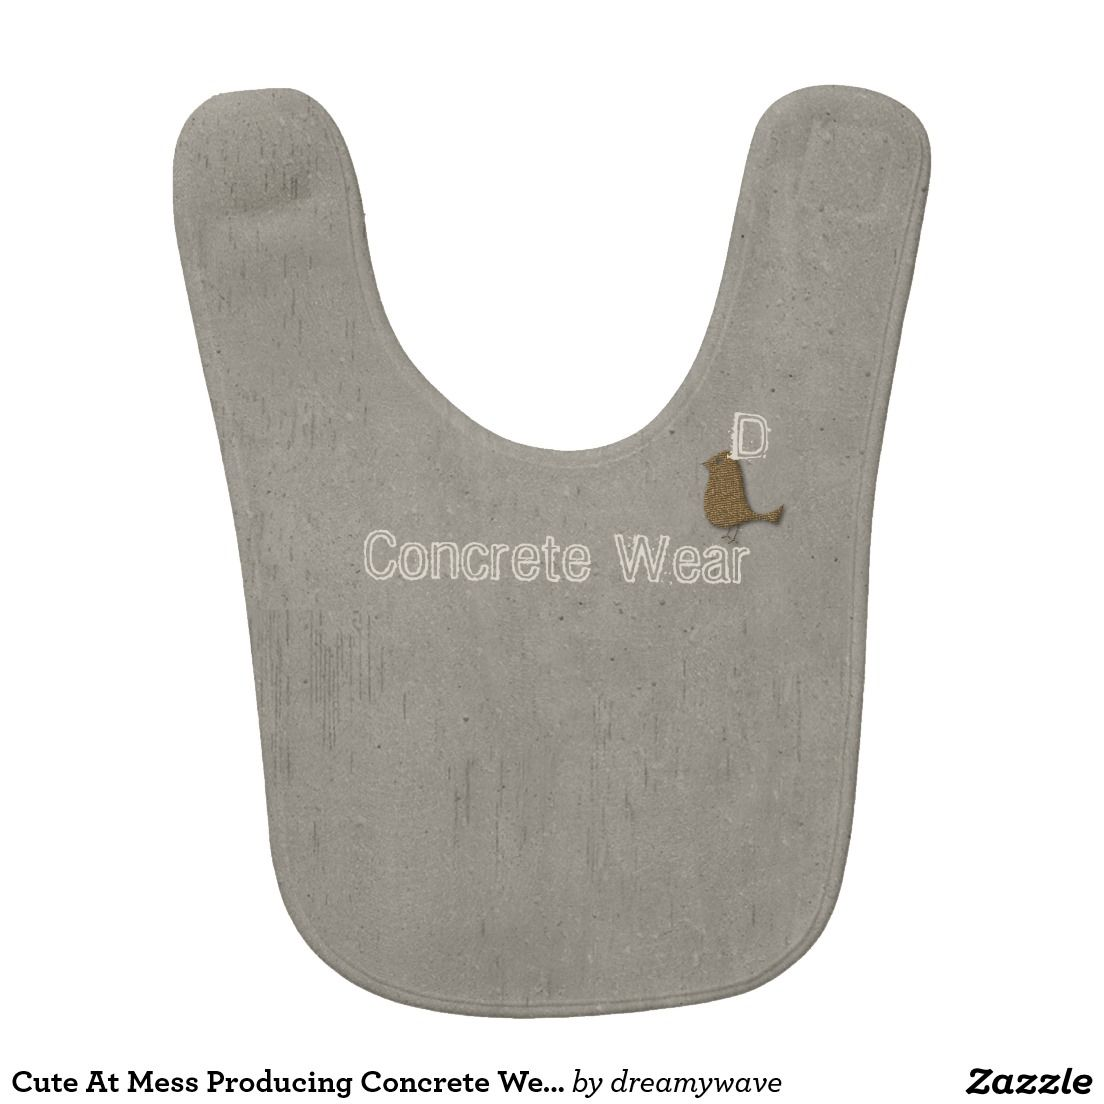 Cute At Mess Producing Concrete Wear Baby Bib